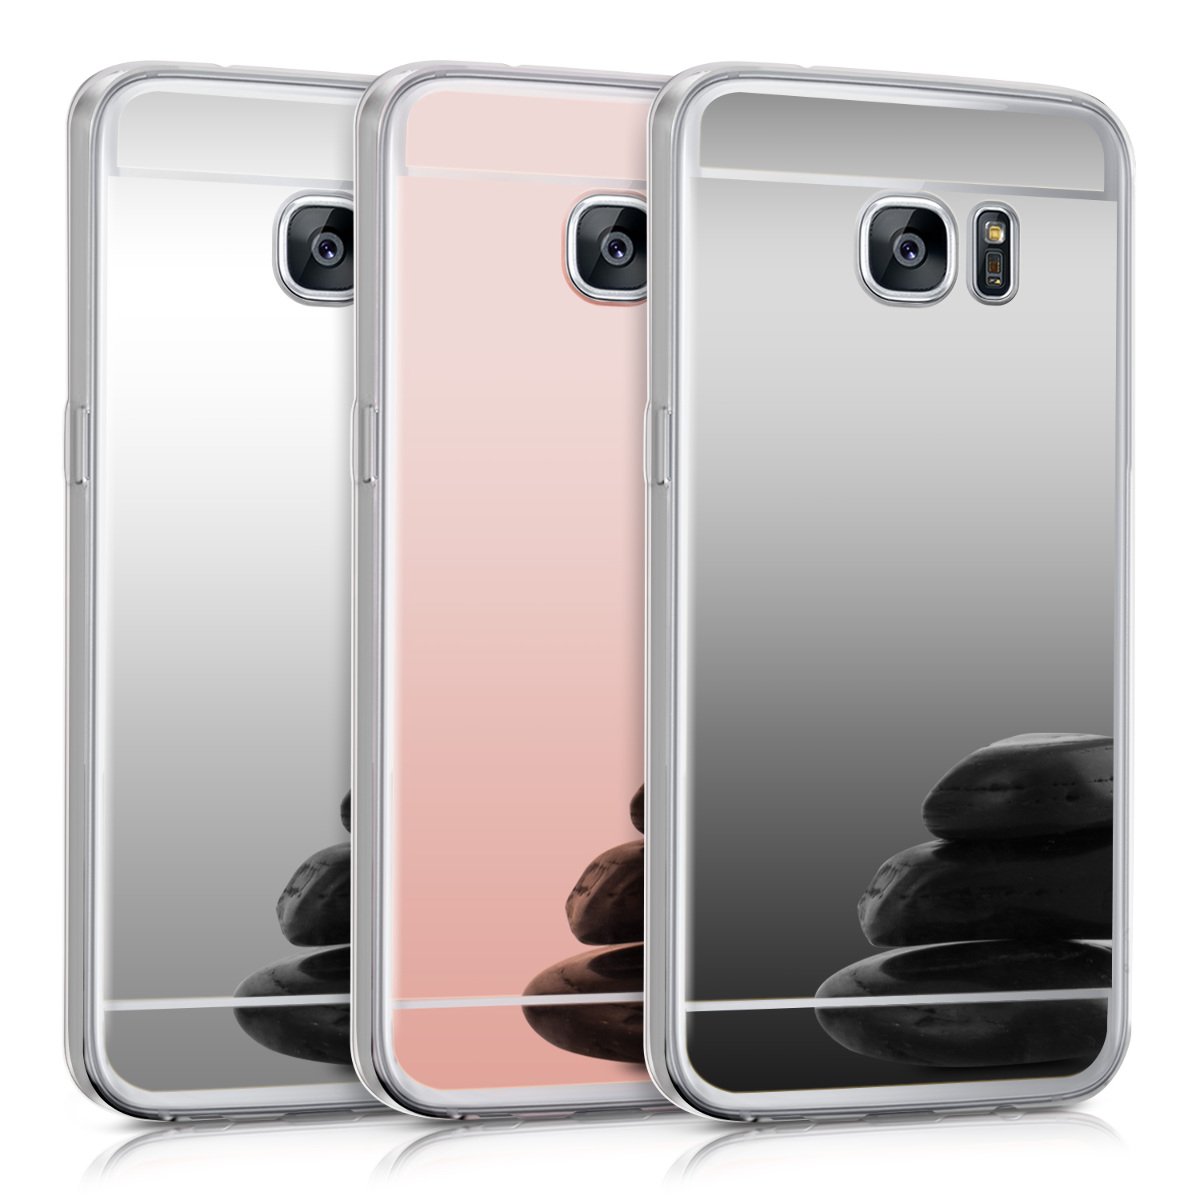 schutzh lle spiegel f r samsung galaxy s7 edge case handy. Black Bedroom Furniture Sets. Home Design Ideas